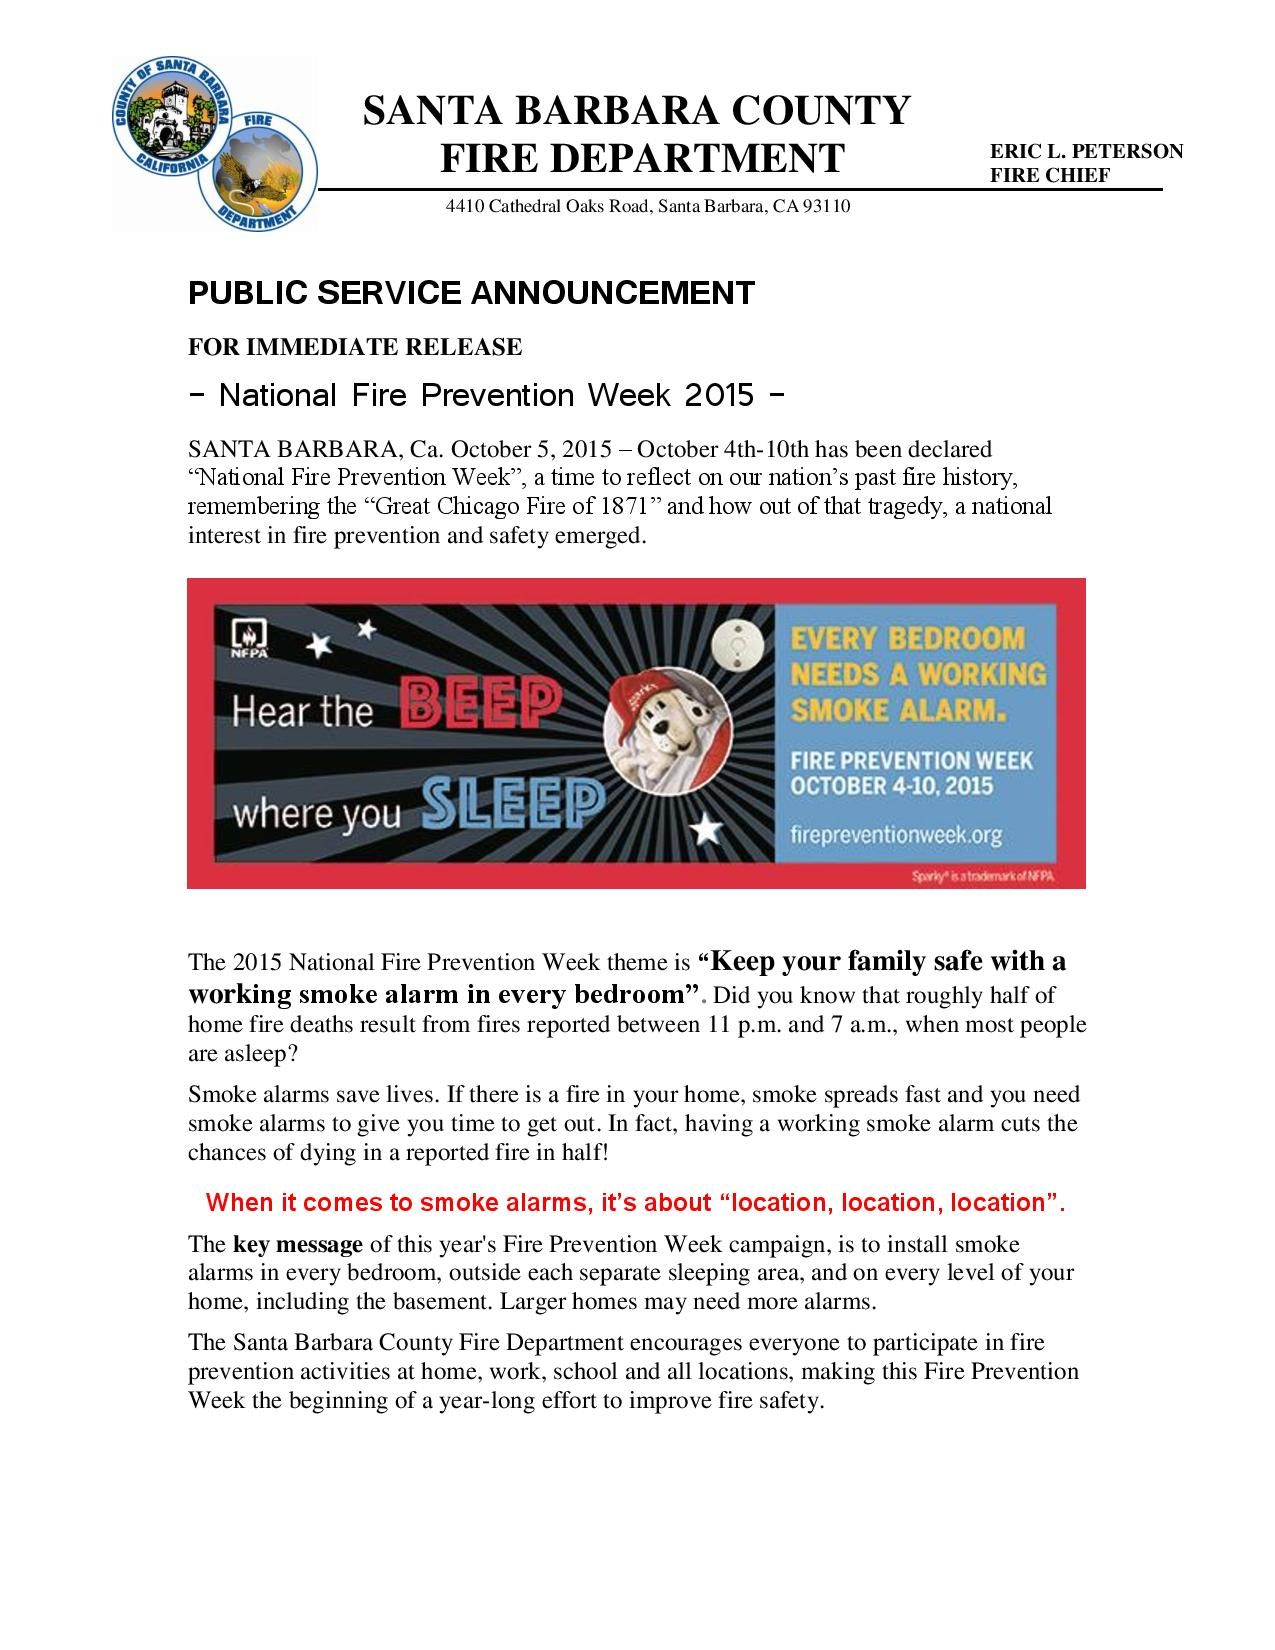 National Fire Prevention Week 2015-pg1